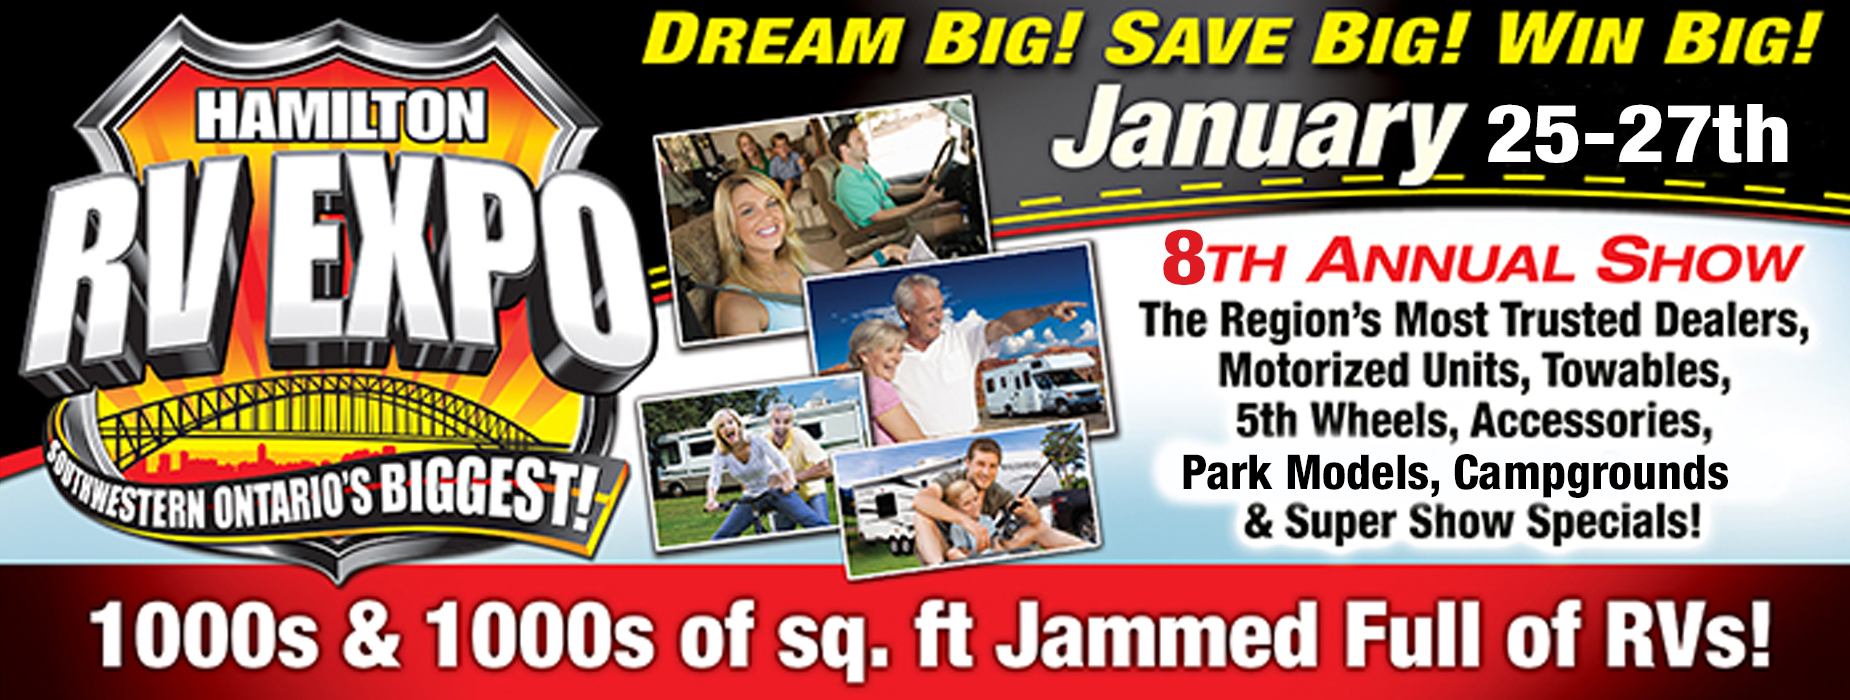 Banner Image for the Hamilton RV Expo event